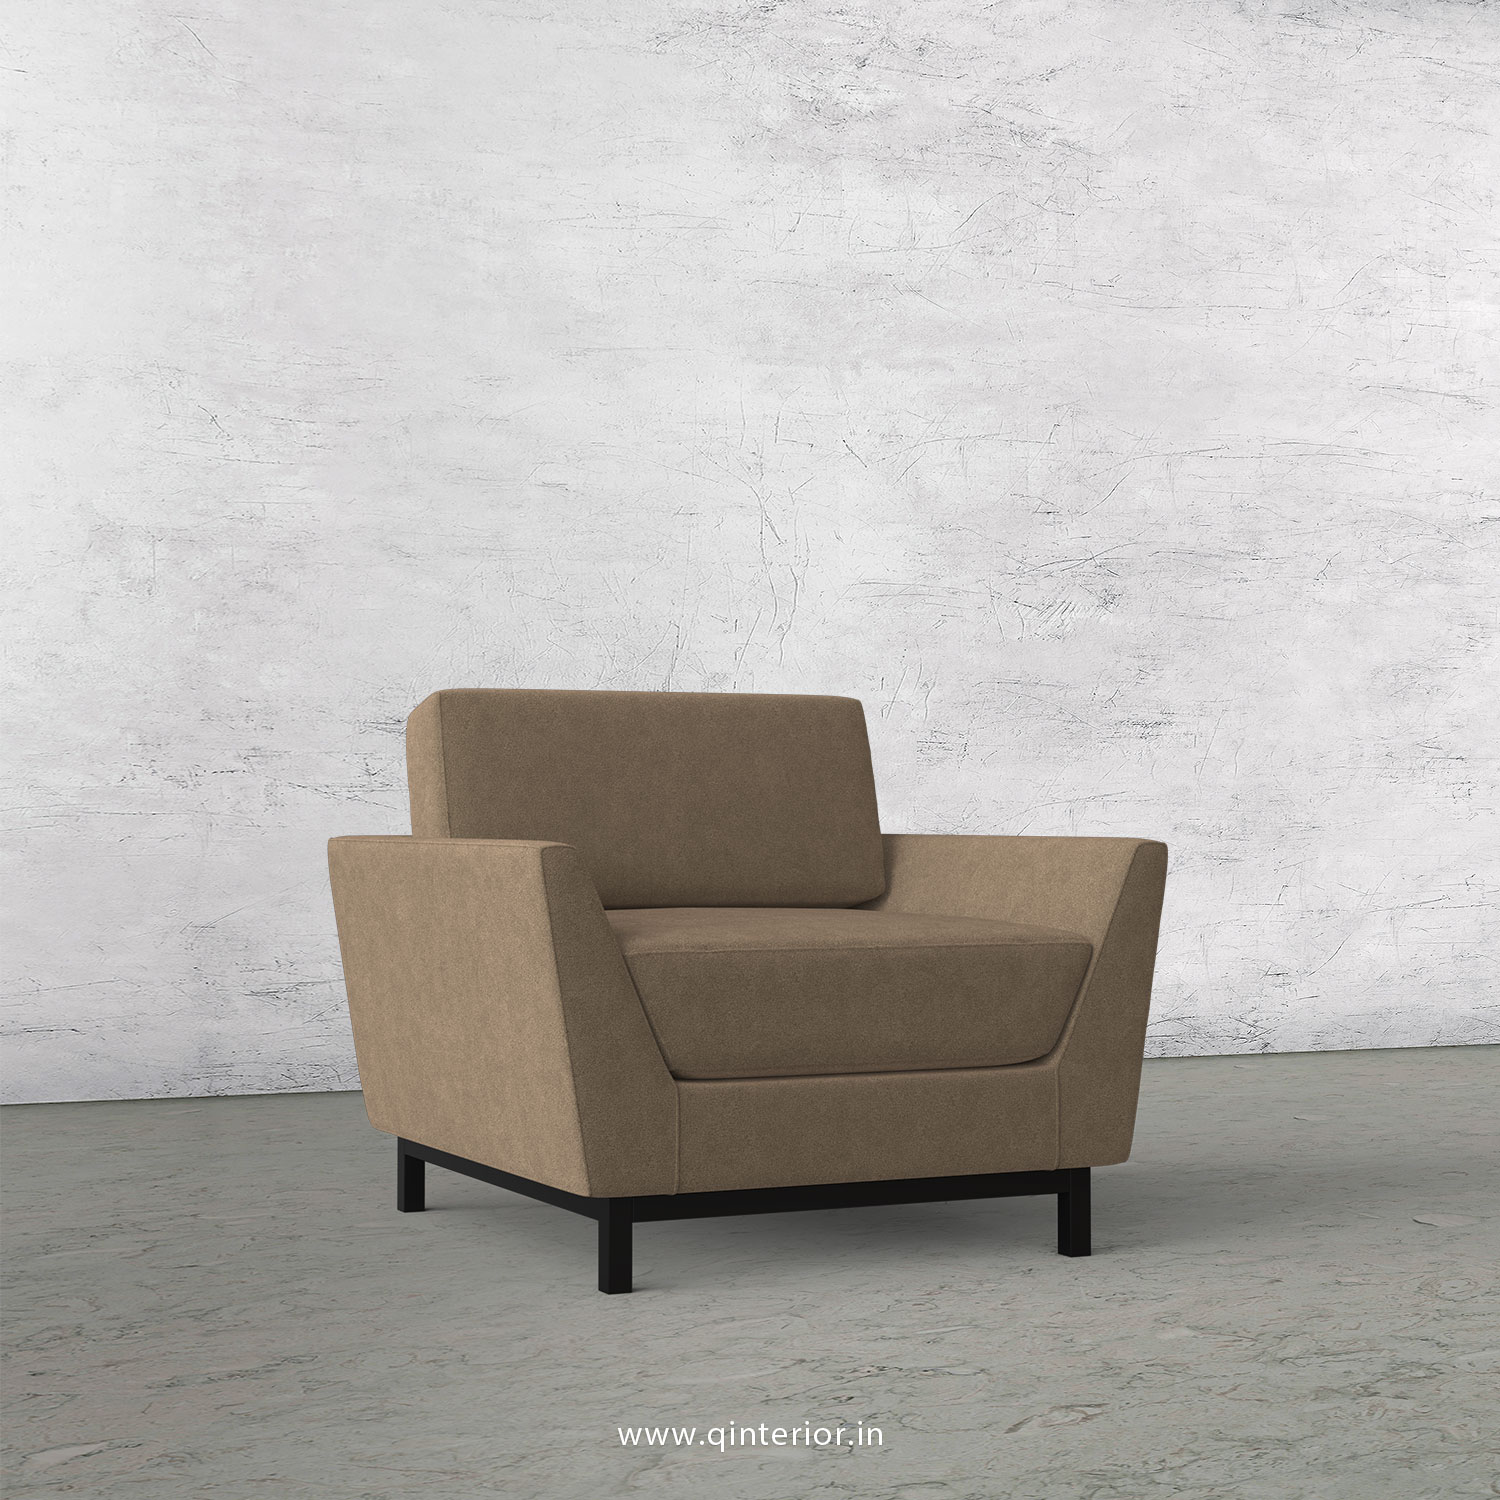 Blitz 1 Seater Sofa in Velvet Fabric - SFA002 VL03